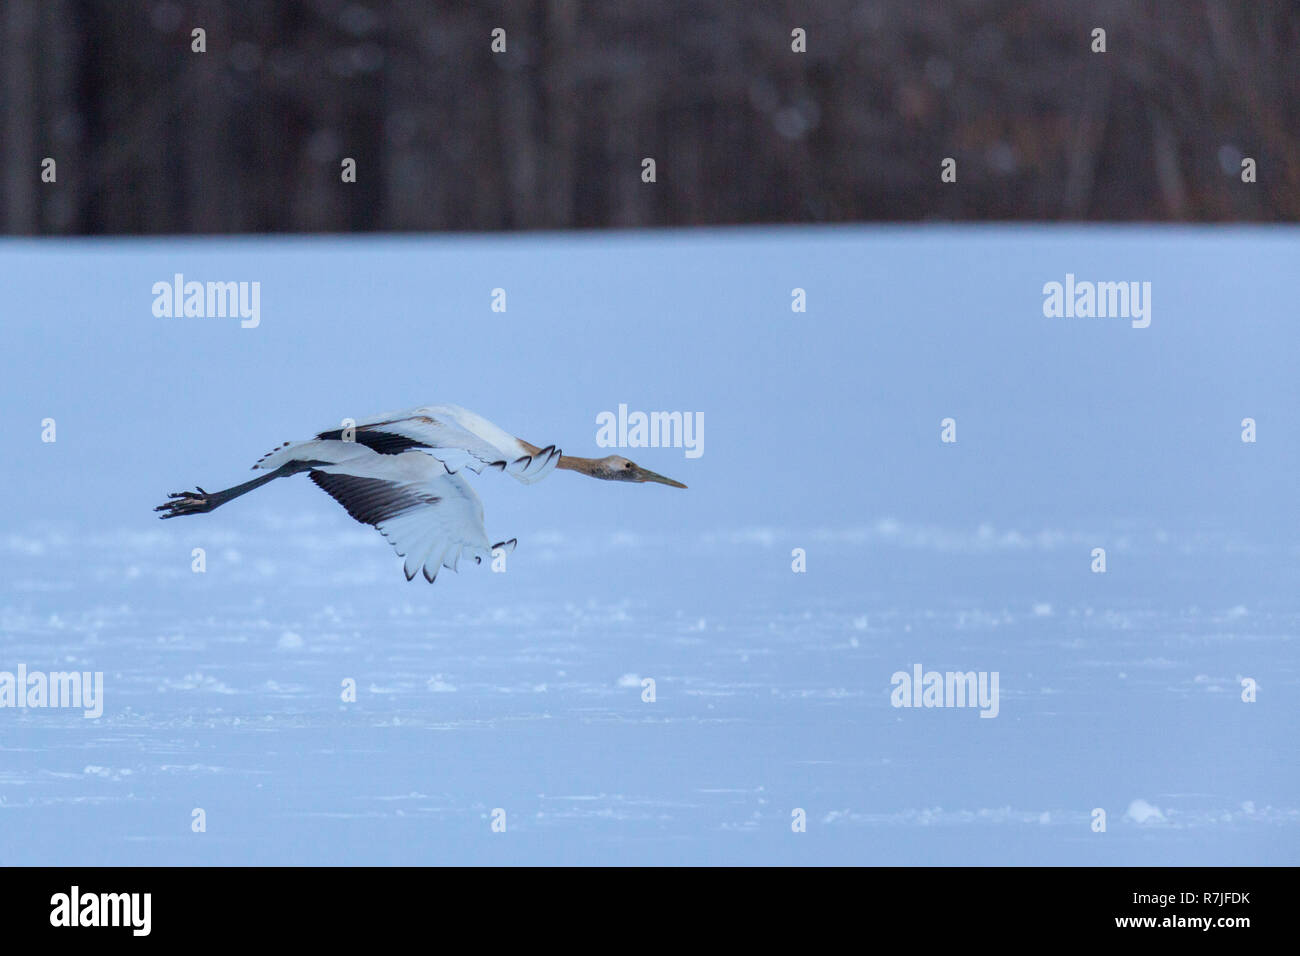 Red-Crowned crane or Grus japonensis or Tancho in Hokkaido Japan during winter migration - Stock Image